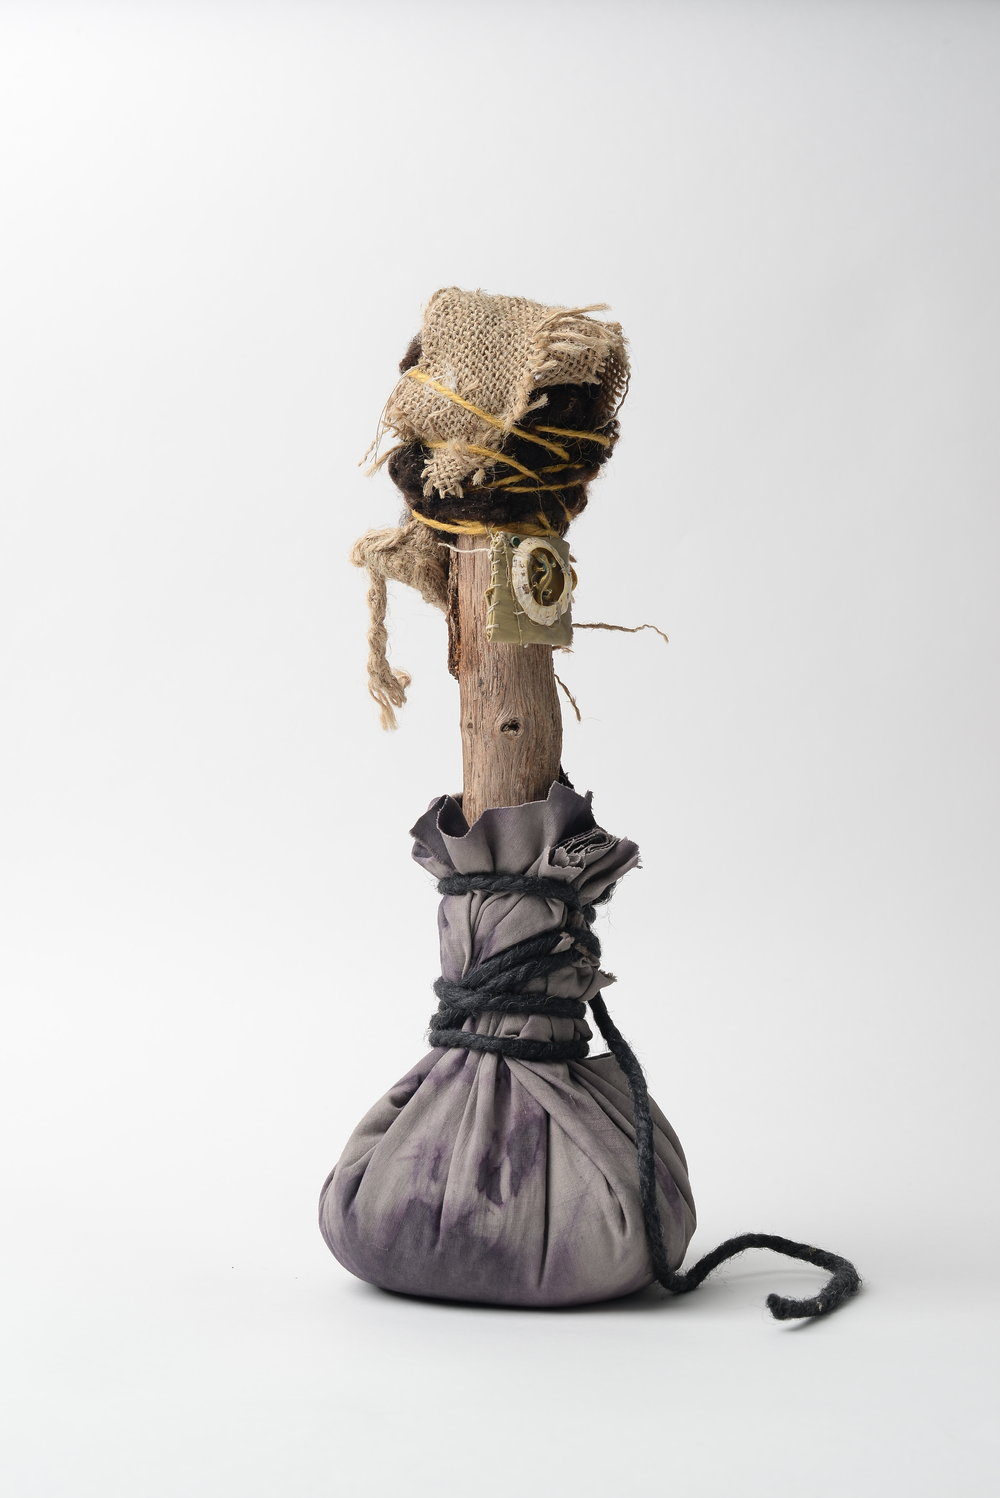 Untitled (duo)  2017 wood, cloth, rice, wool, hessian, string, rope, token of gratitude h 34cm